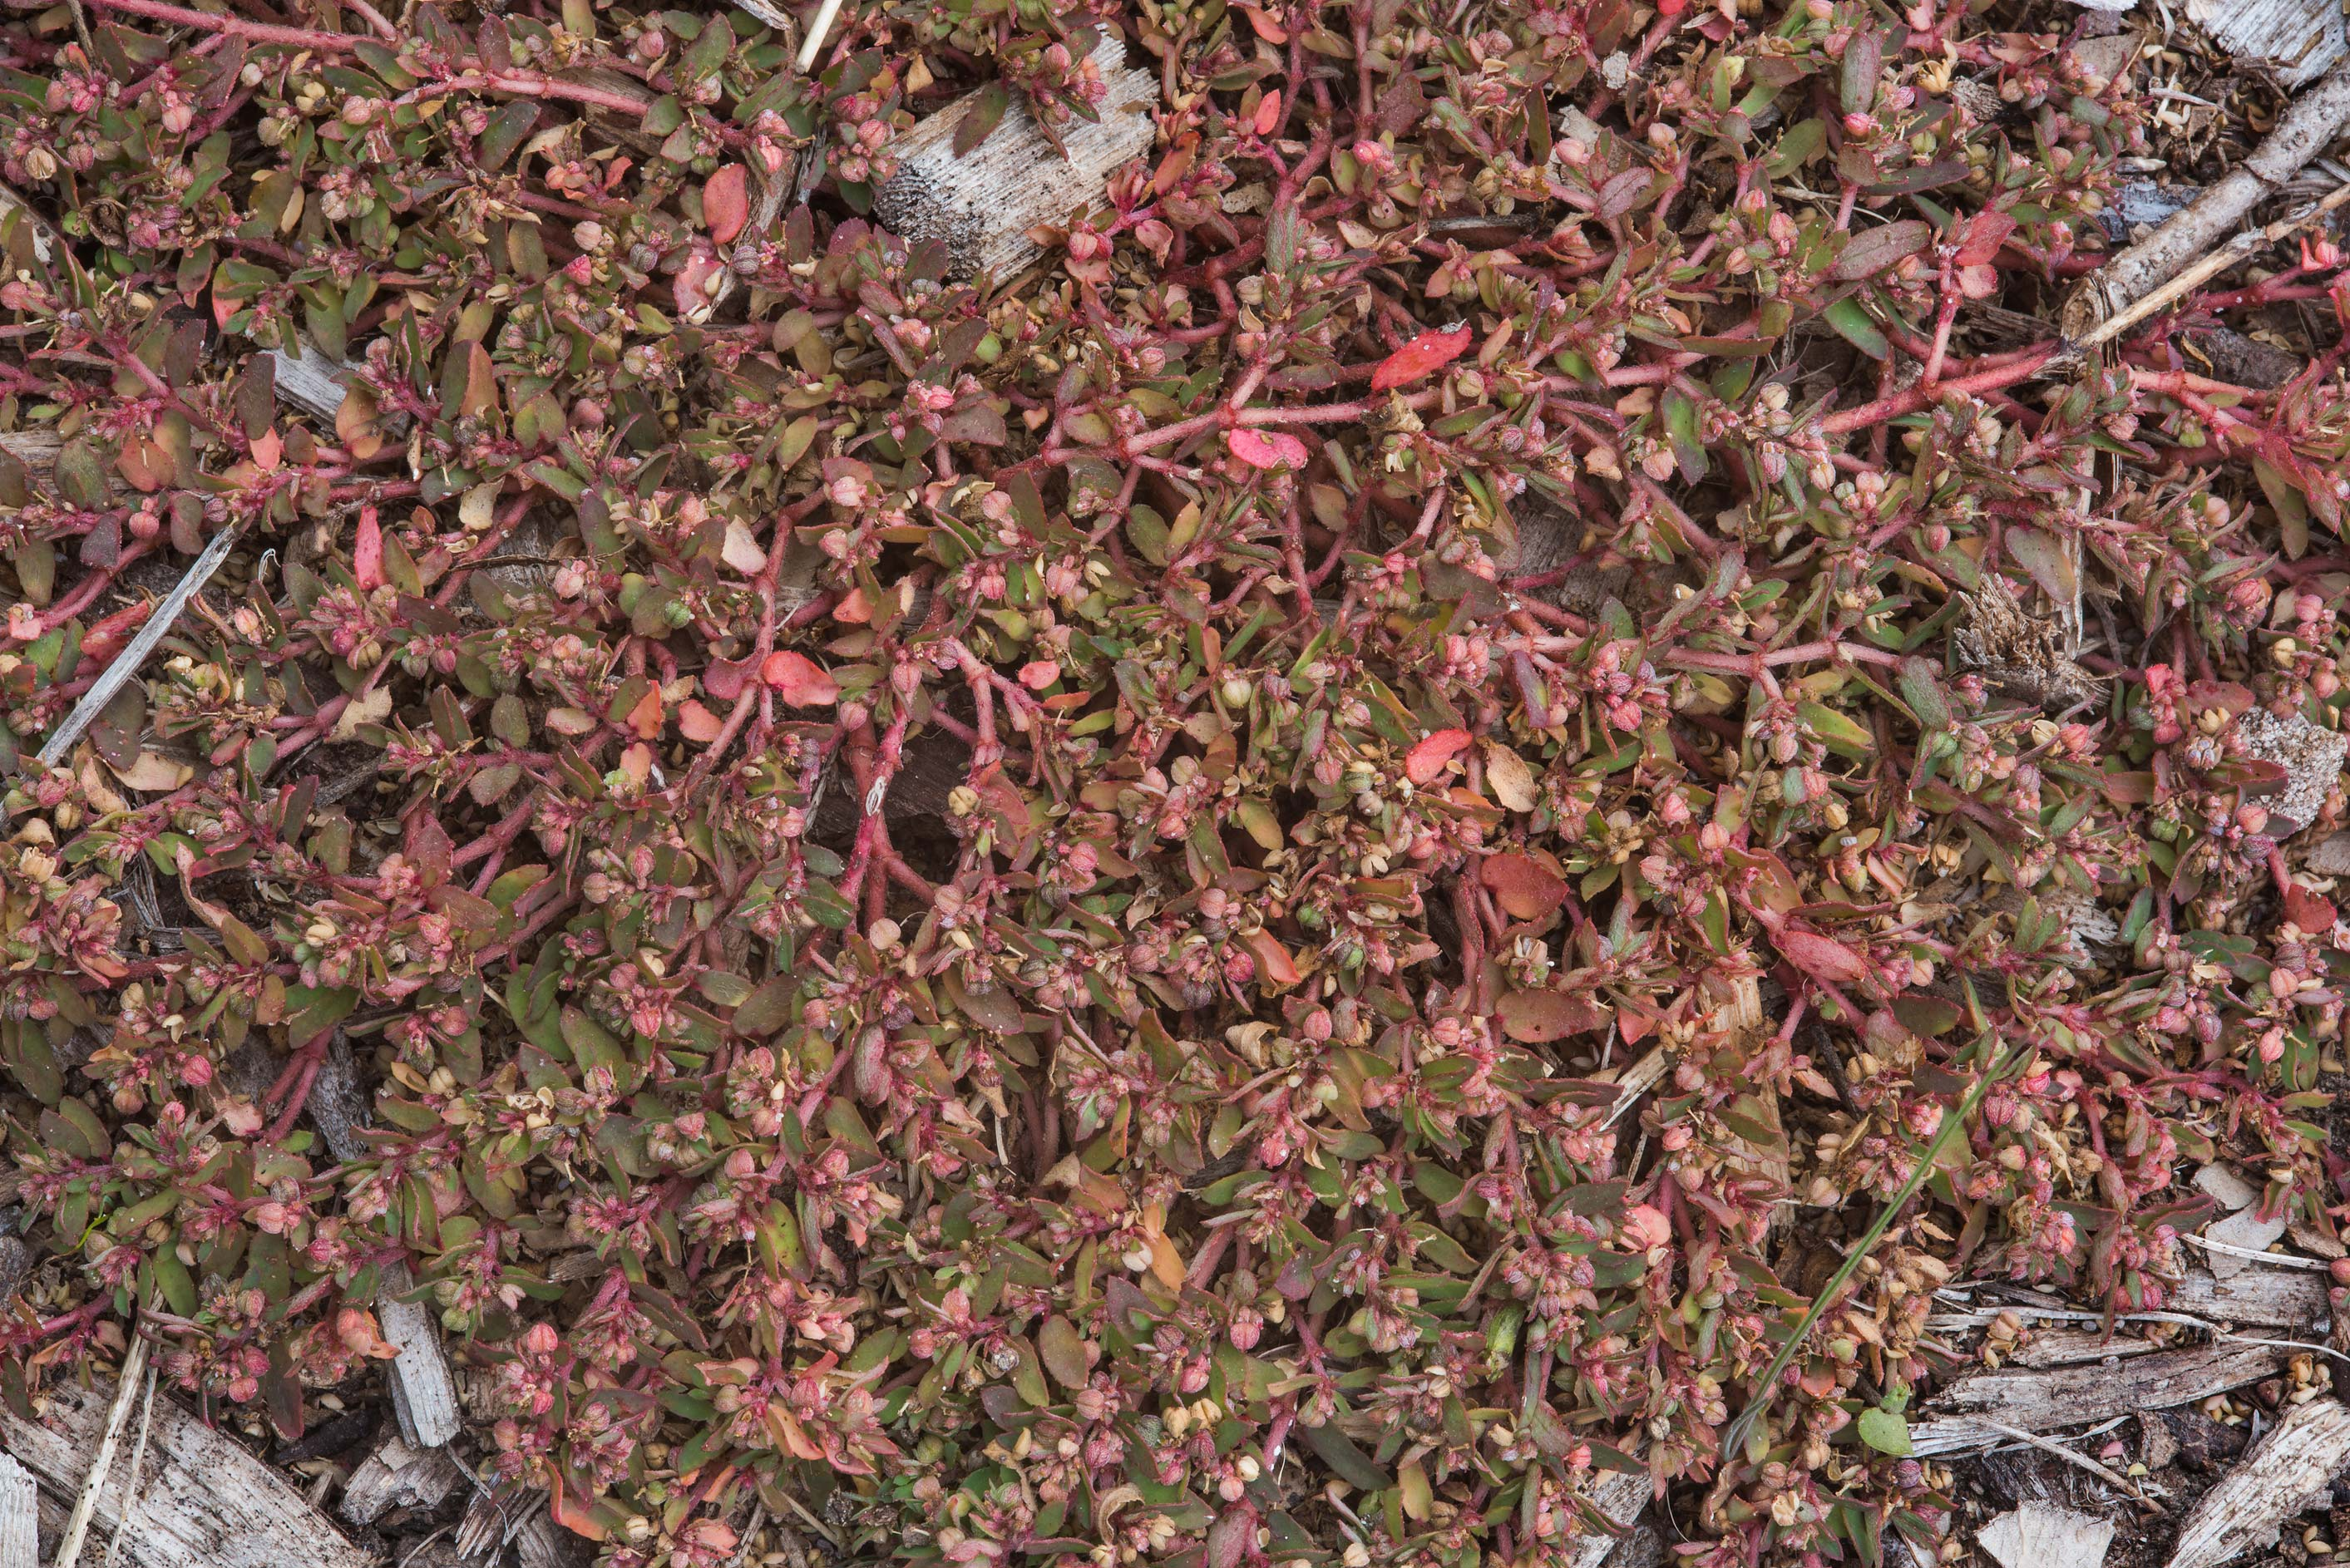 Reddish mat of creeping spurge (Euphorbia) in D...Bee Creek Park. College Station, Texas